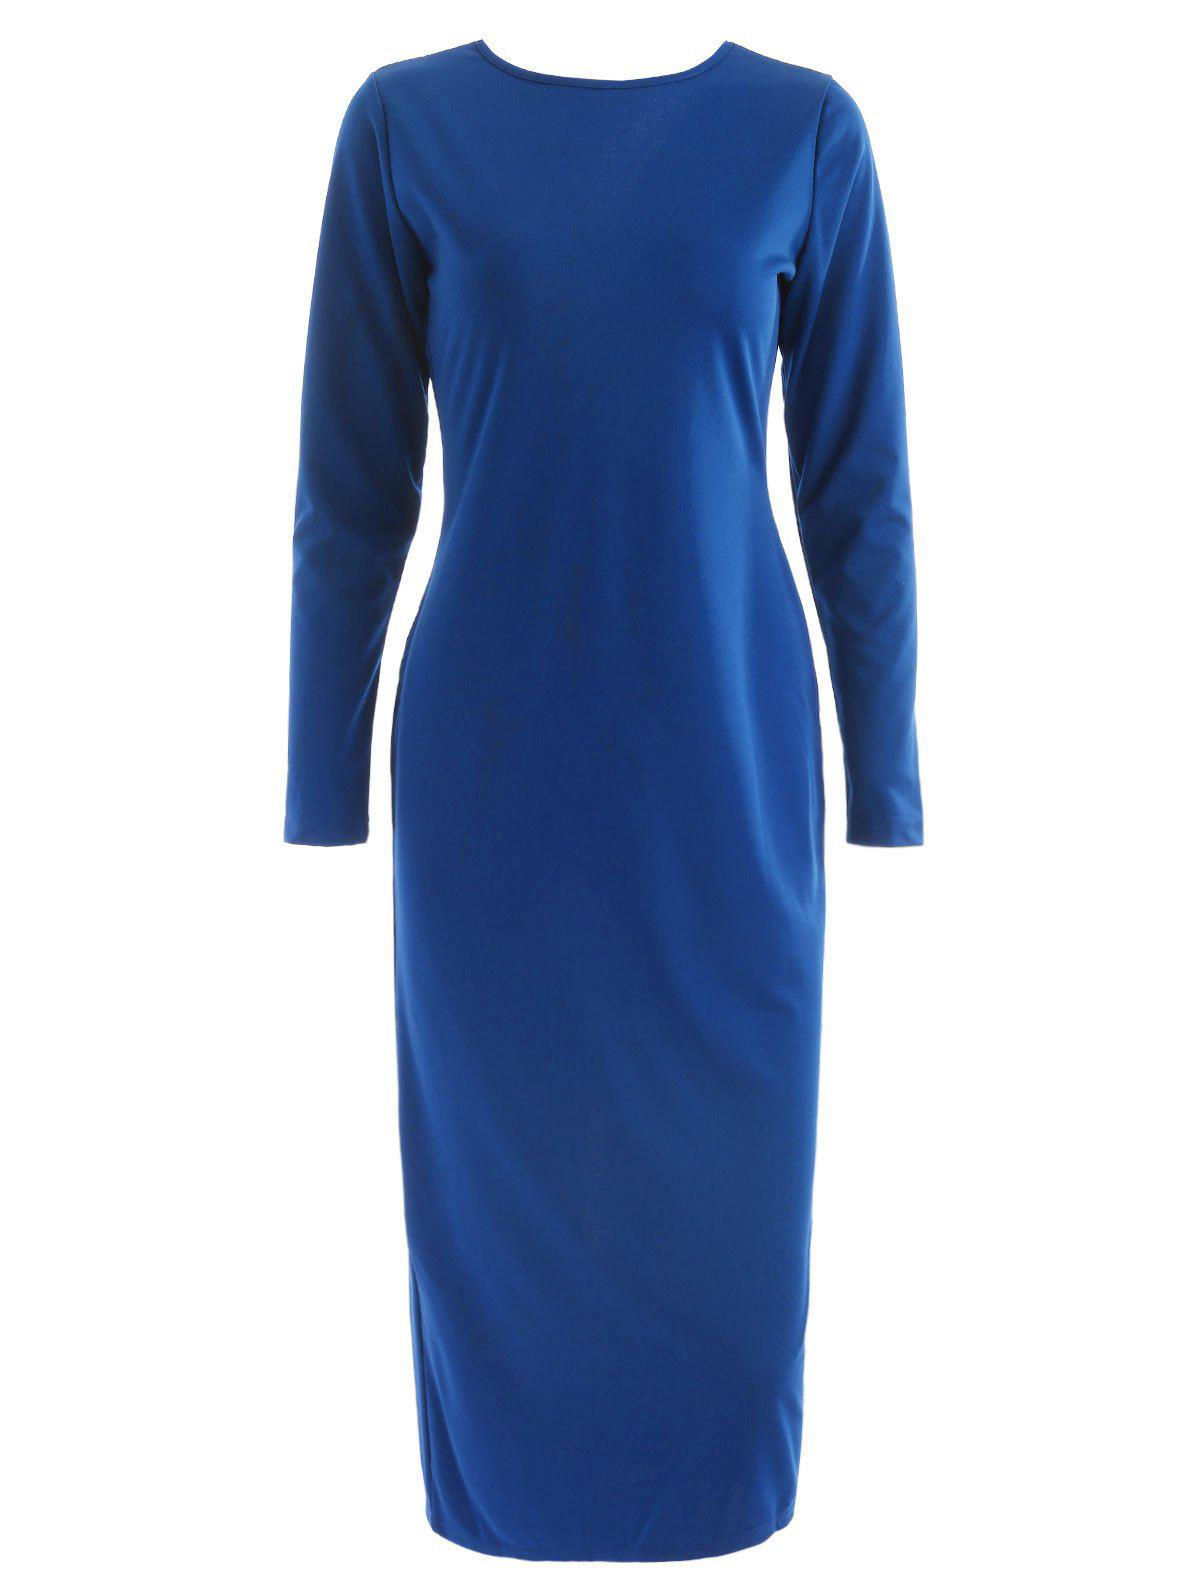 Long Sleeve Zip Up Pencil Dress - BLUE M